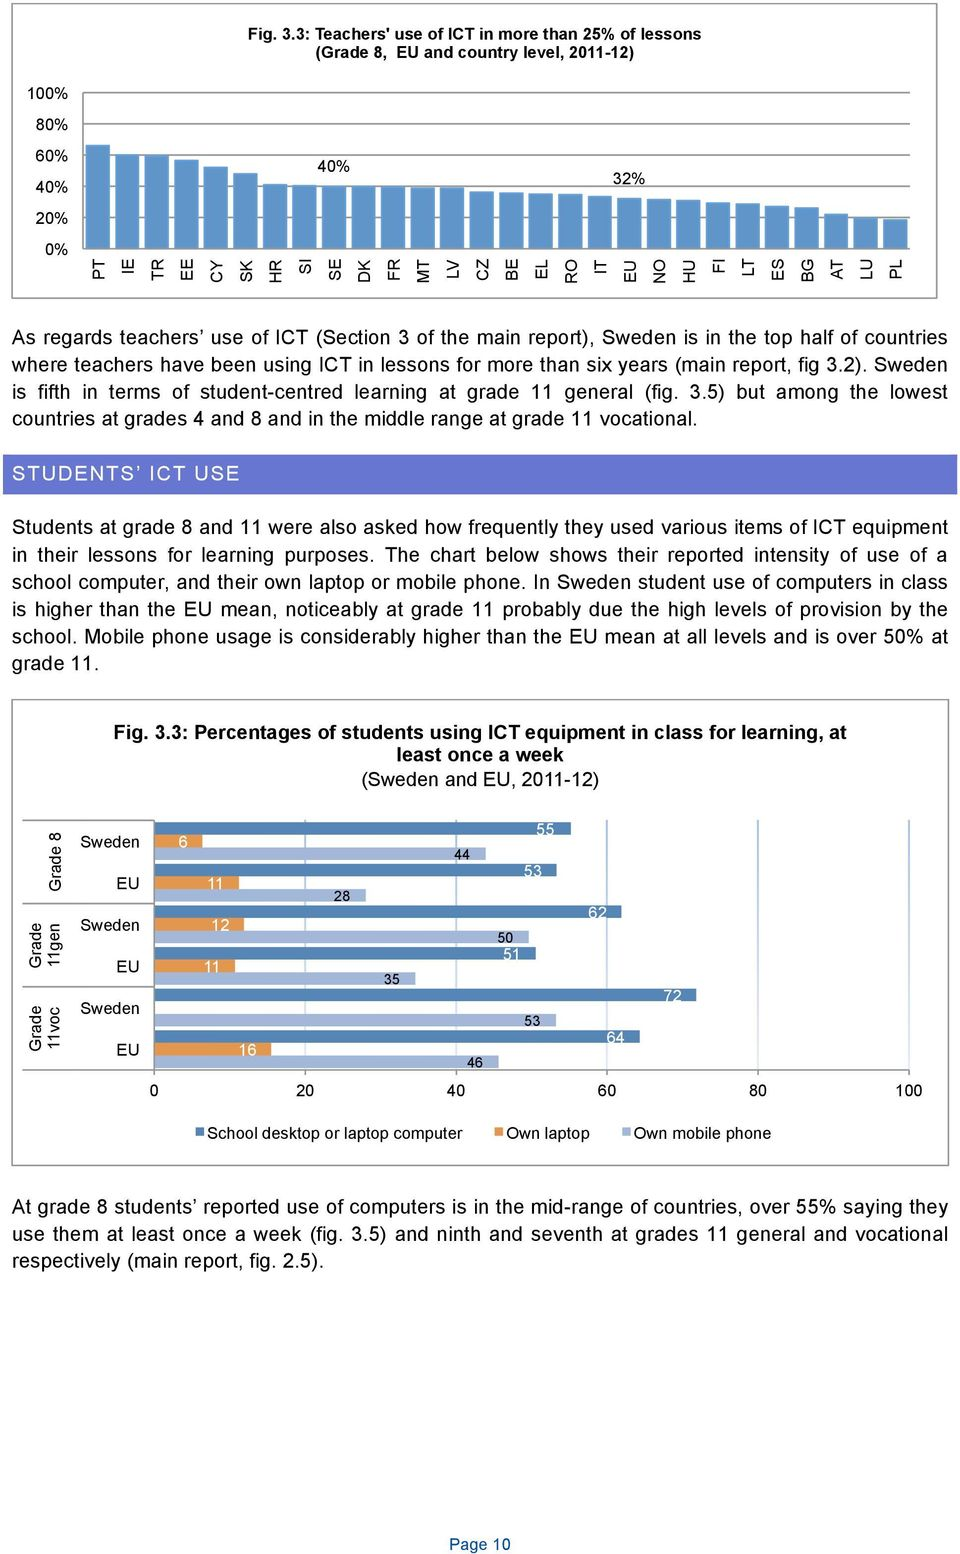 PL As regards teachers use of ICT (Section 3 of the main report), is in the top half of countries where teachers have been using ICT in lessons for more than six years (main report, fig 3.2).